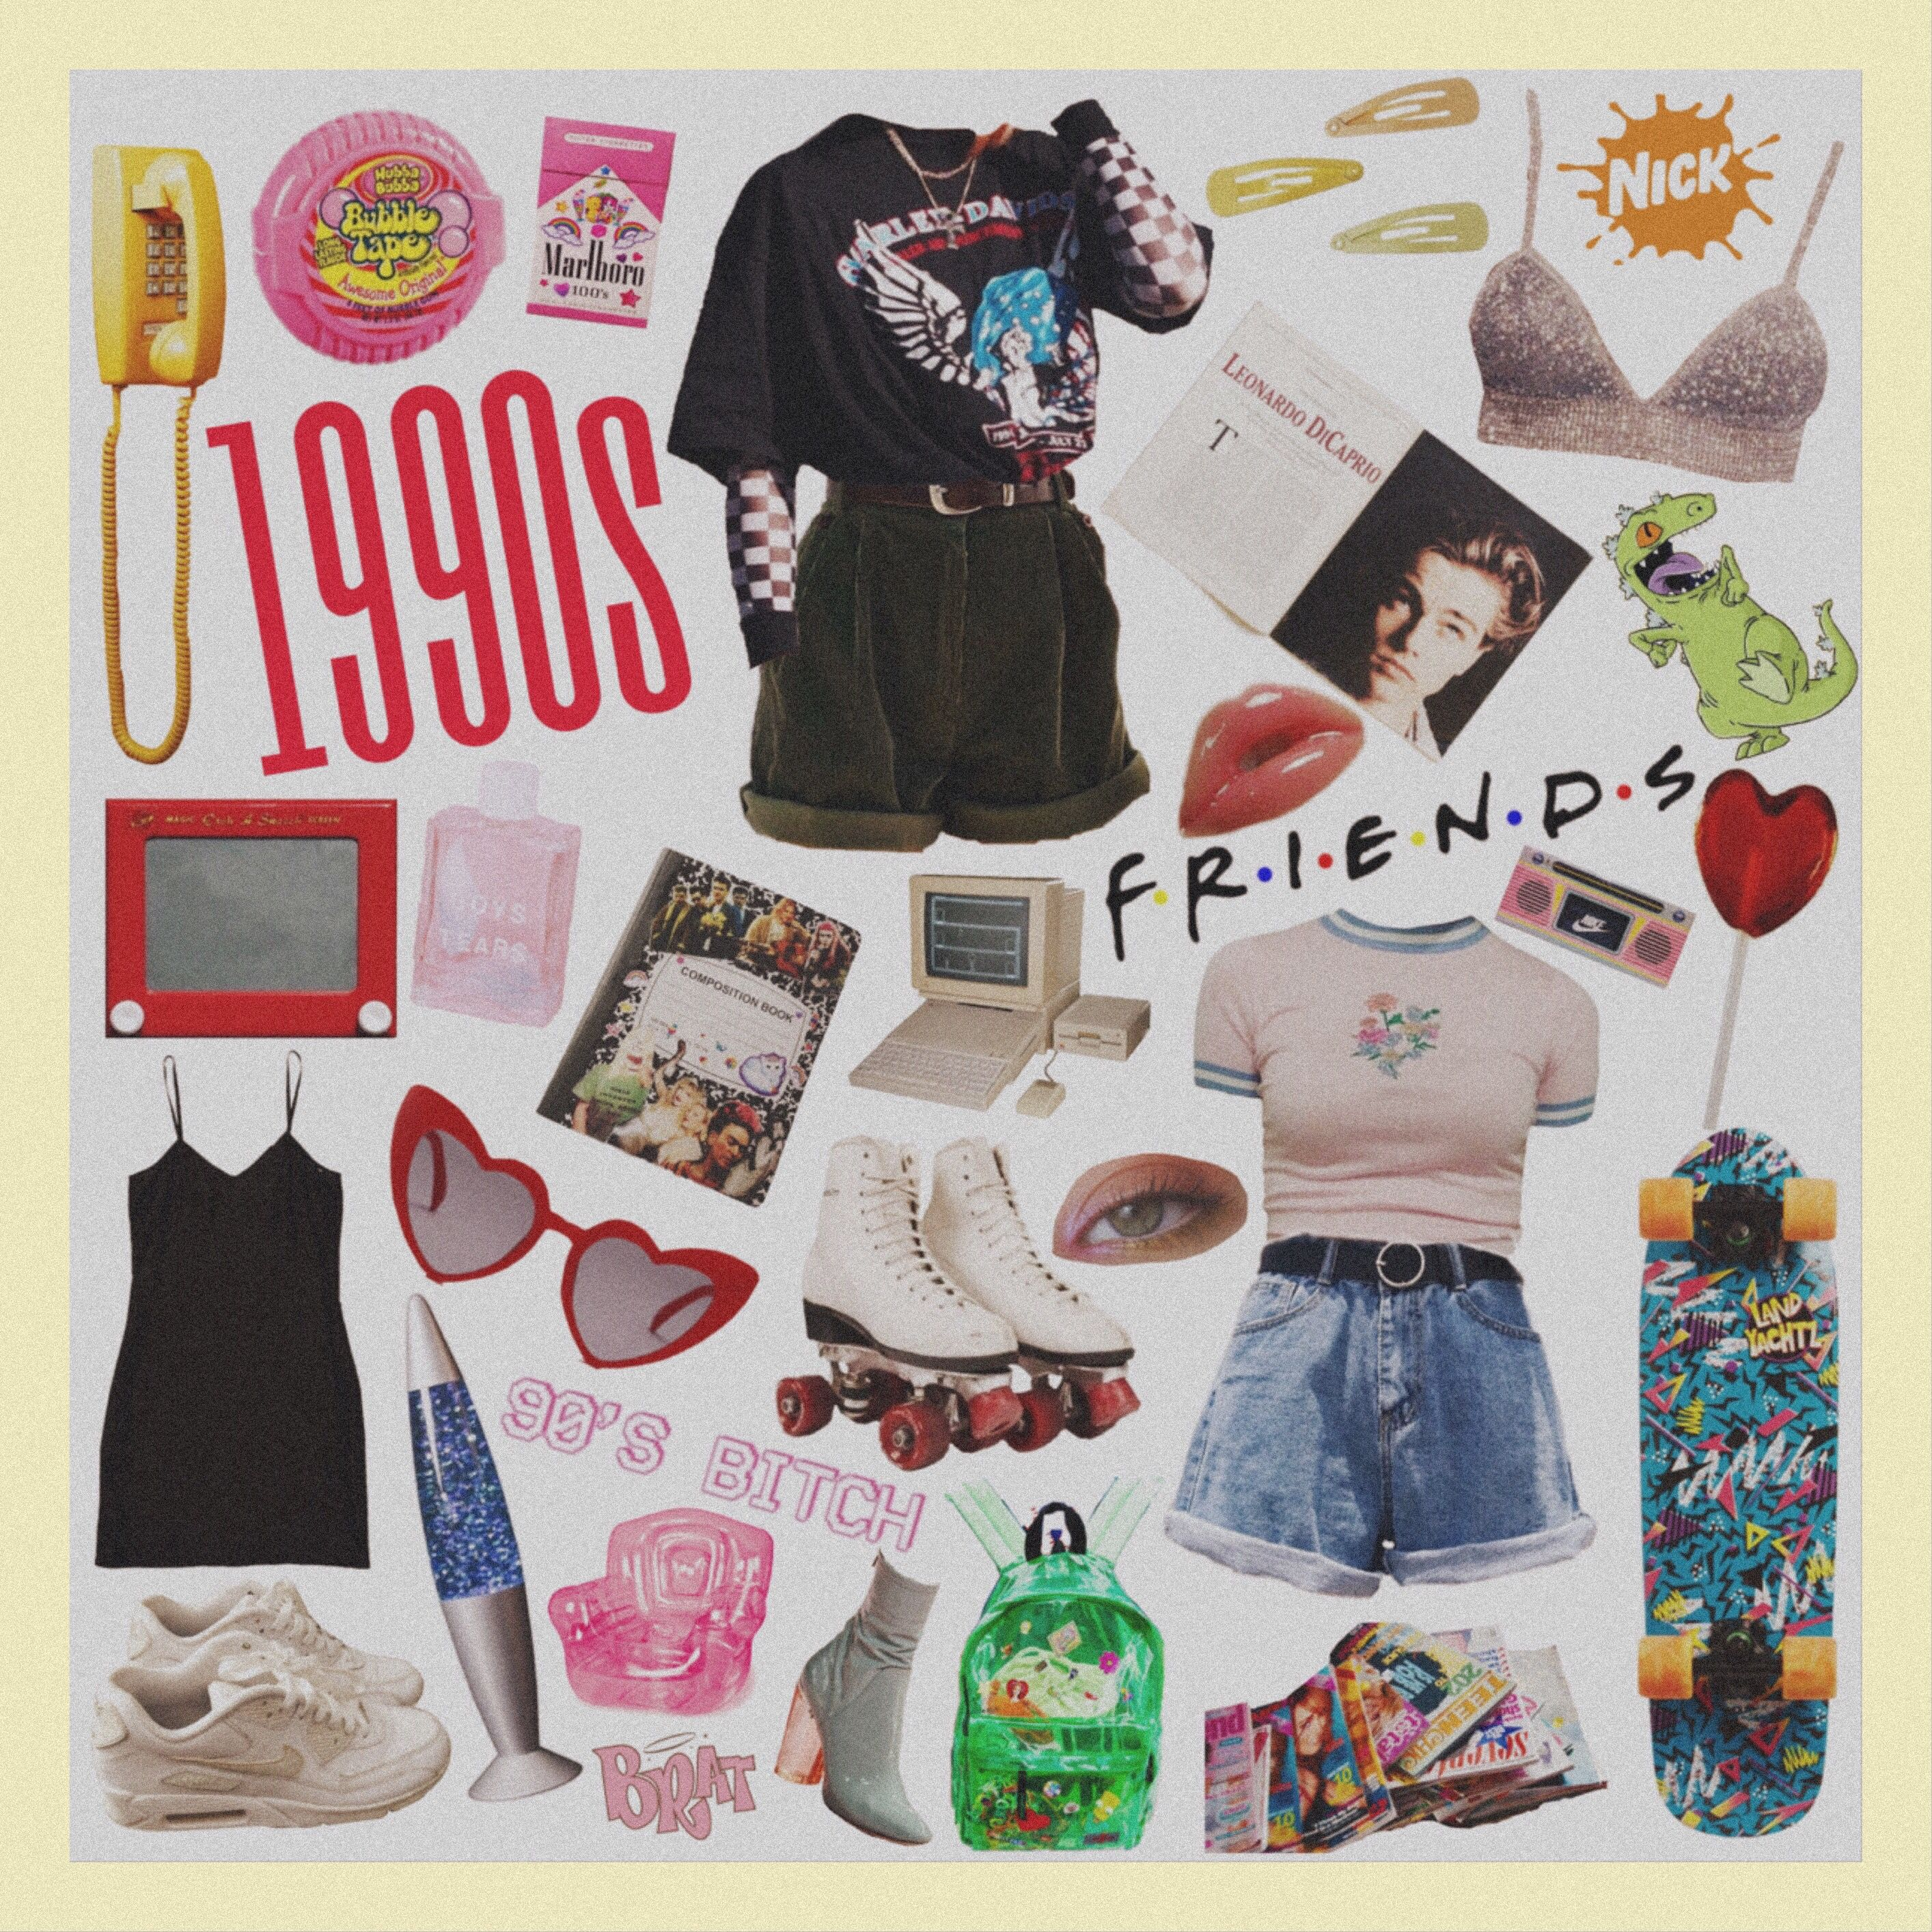 90s Aesthetic Vintage Clothes Shop Mood Board Fashion 90s Girl